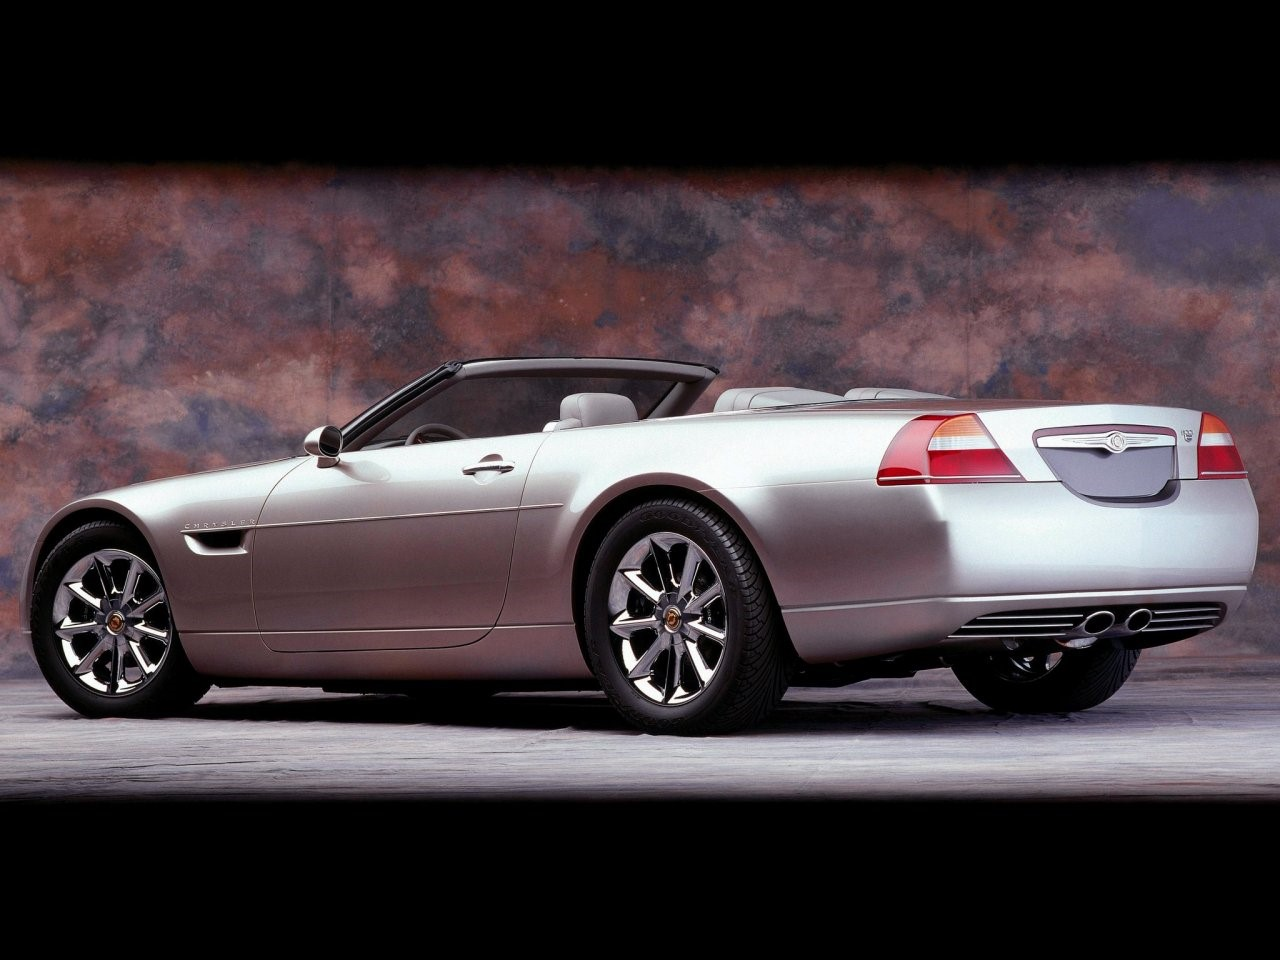 2000 Chrysler 300C concept 5